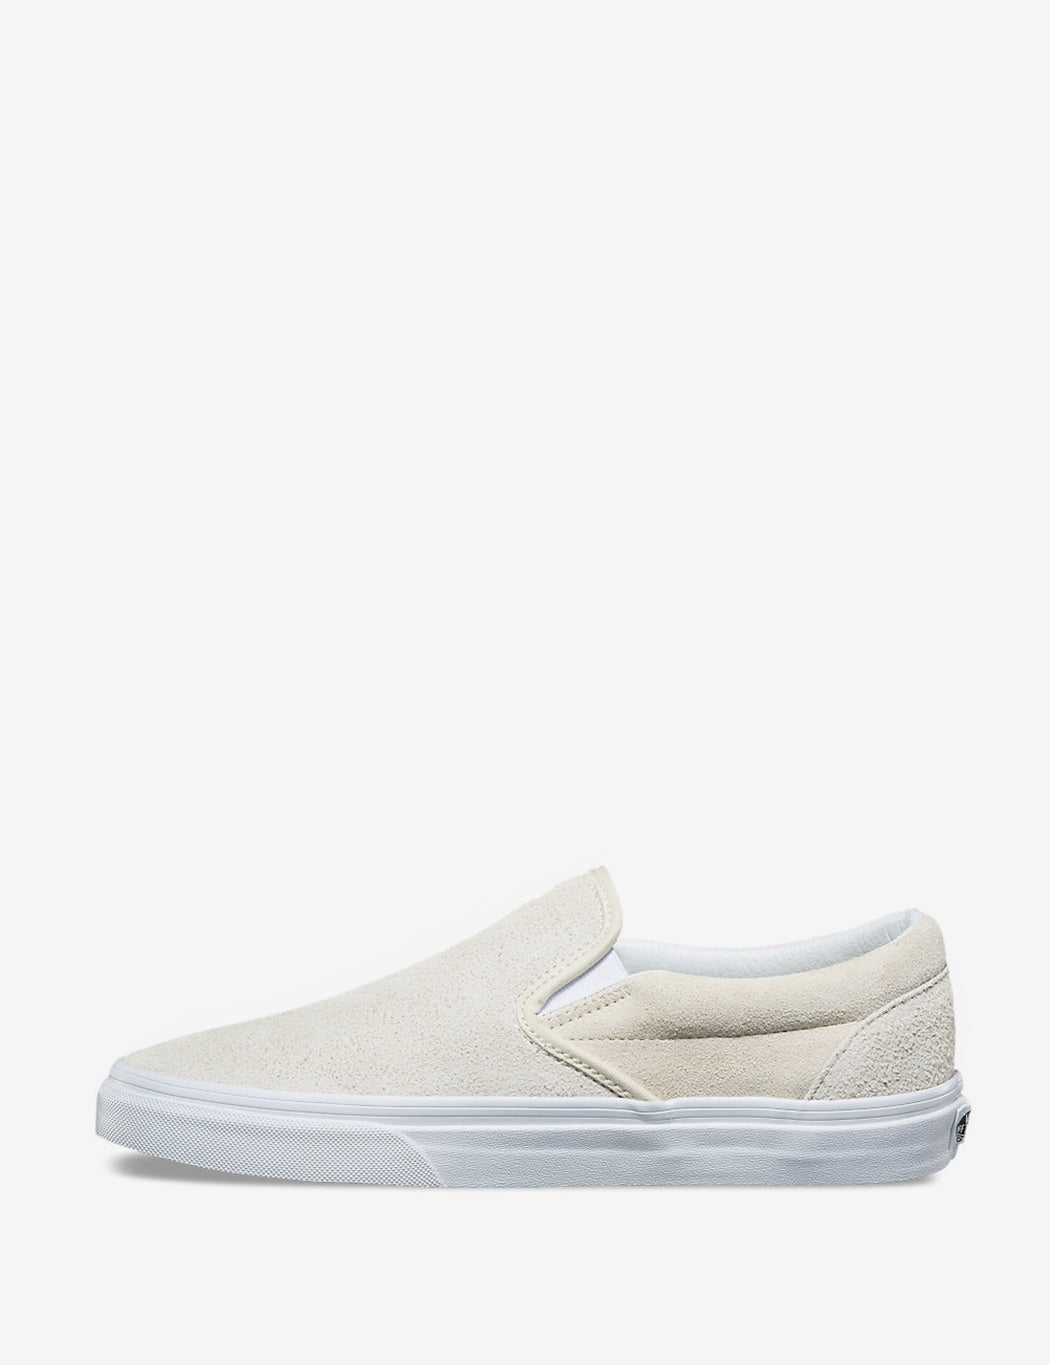 25cd4f8a22d3cf ... Vans Classic Slip-On (Hairy Suede) - Turtledove Off White ...